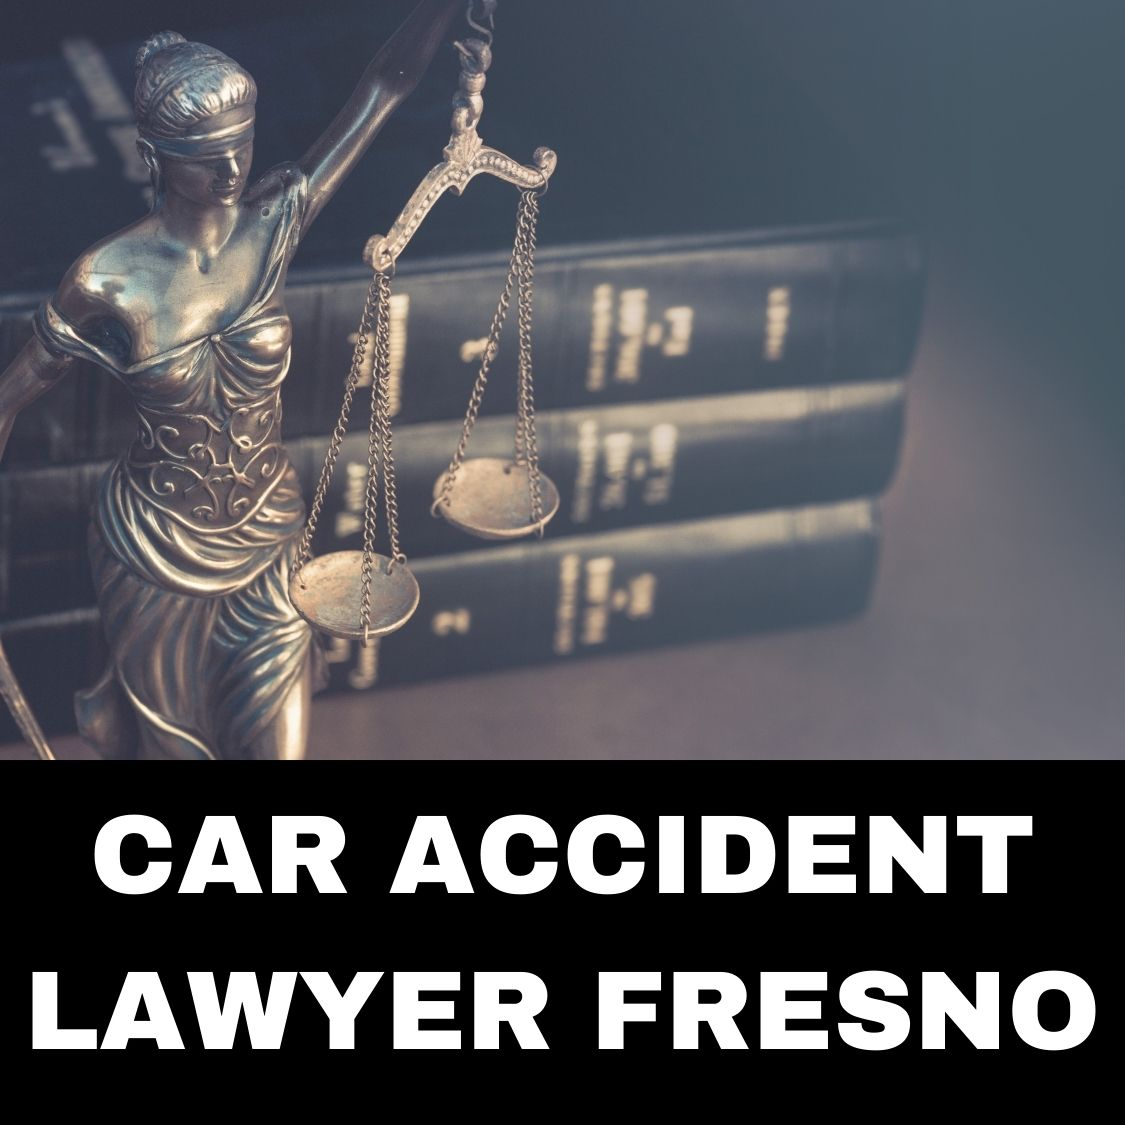 Auto Injury Lawyer Fresno - The Facts